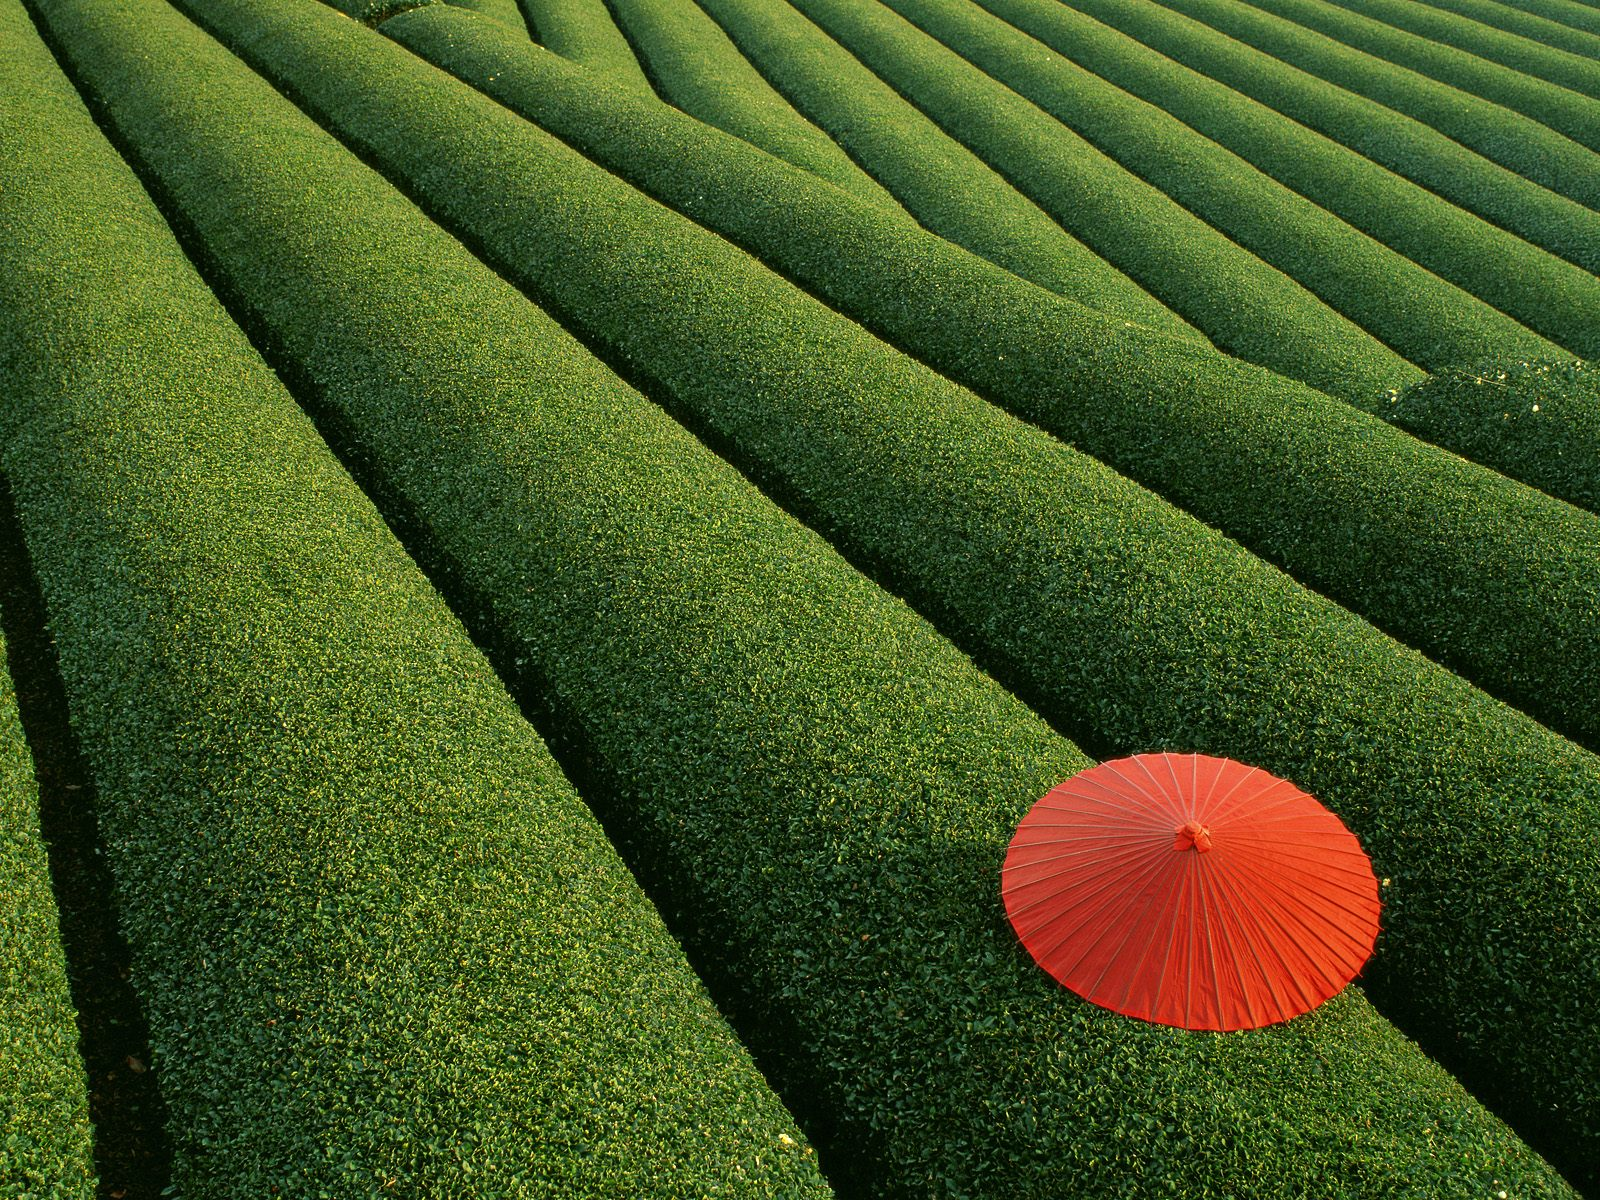 Tea_Fields_Japan.jpg